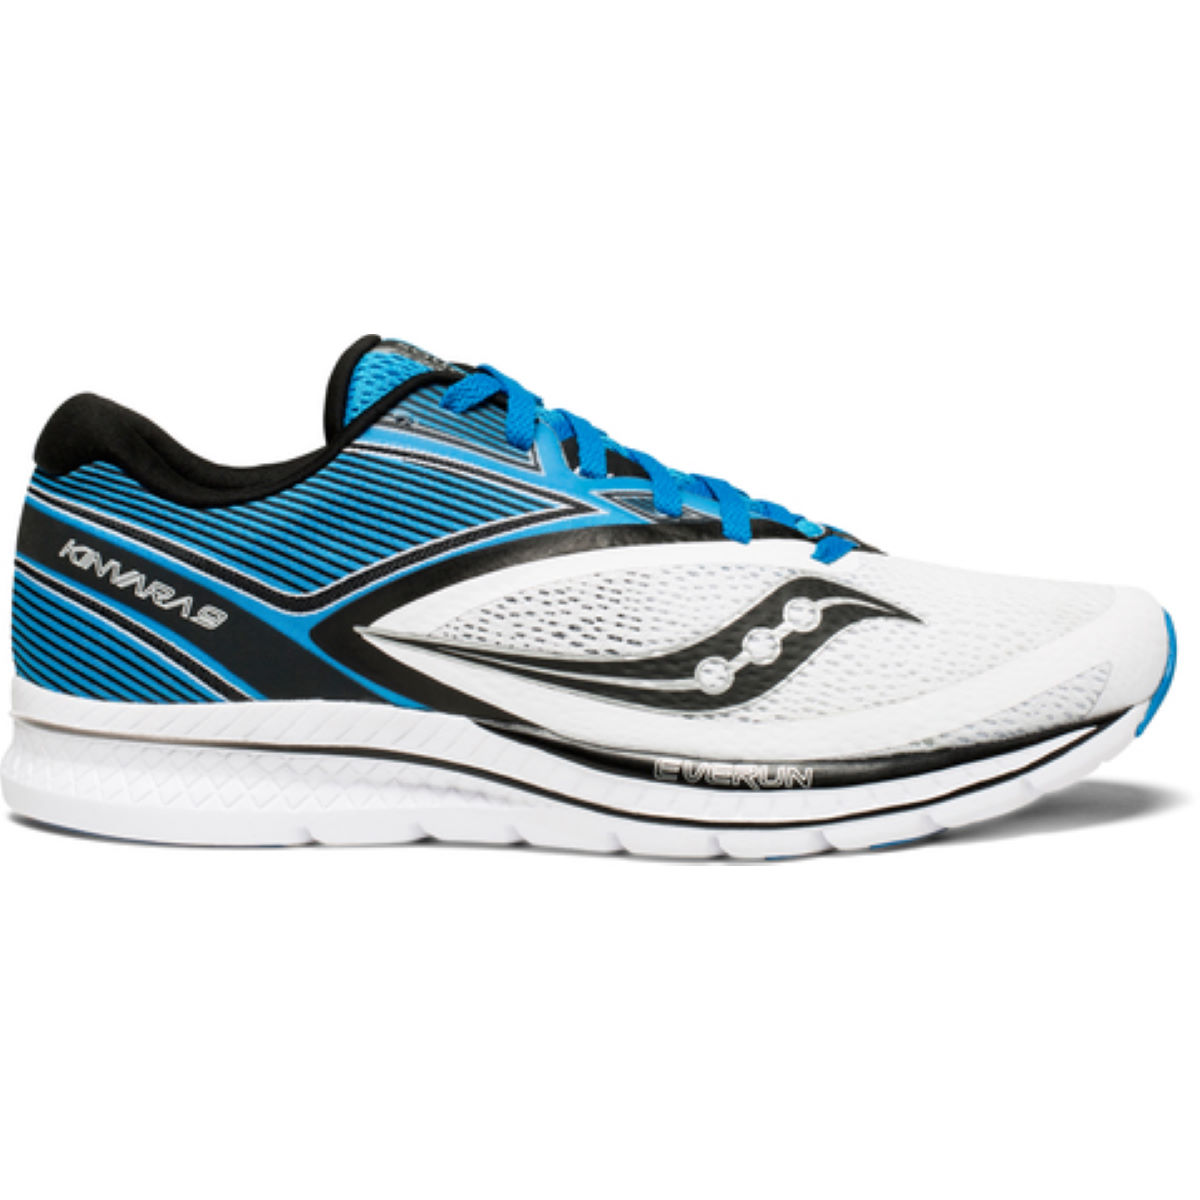 Saucony Kinvara 9 Shoes   Running Shoes